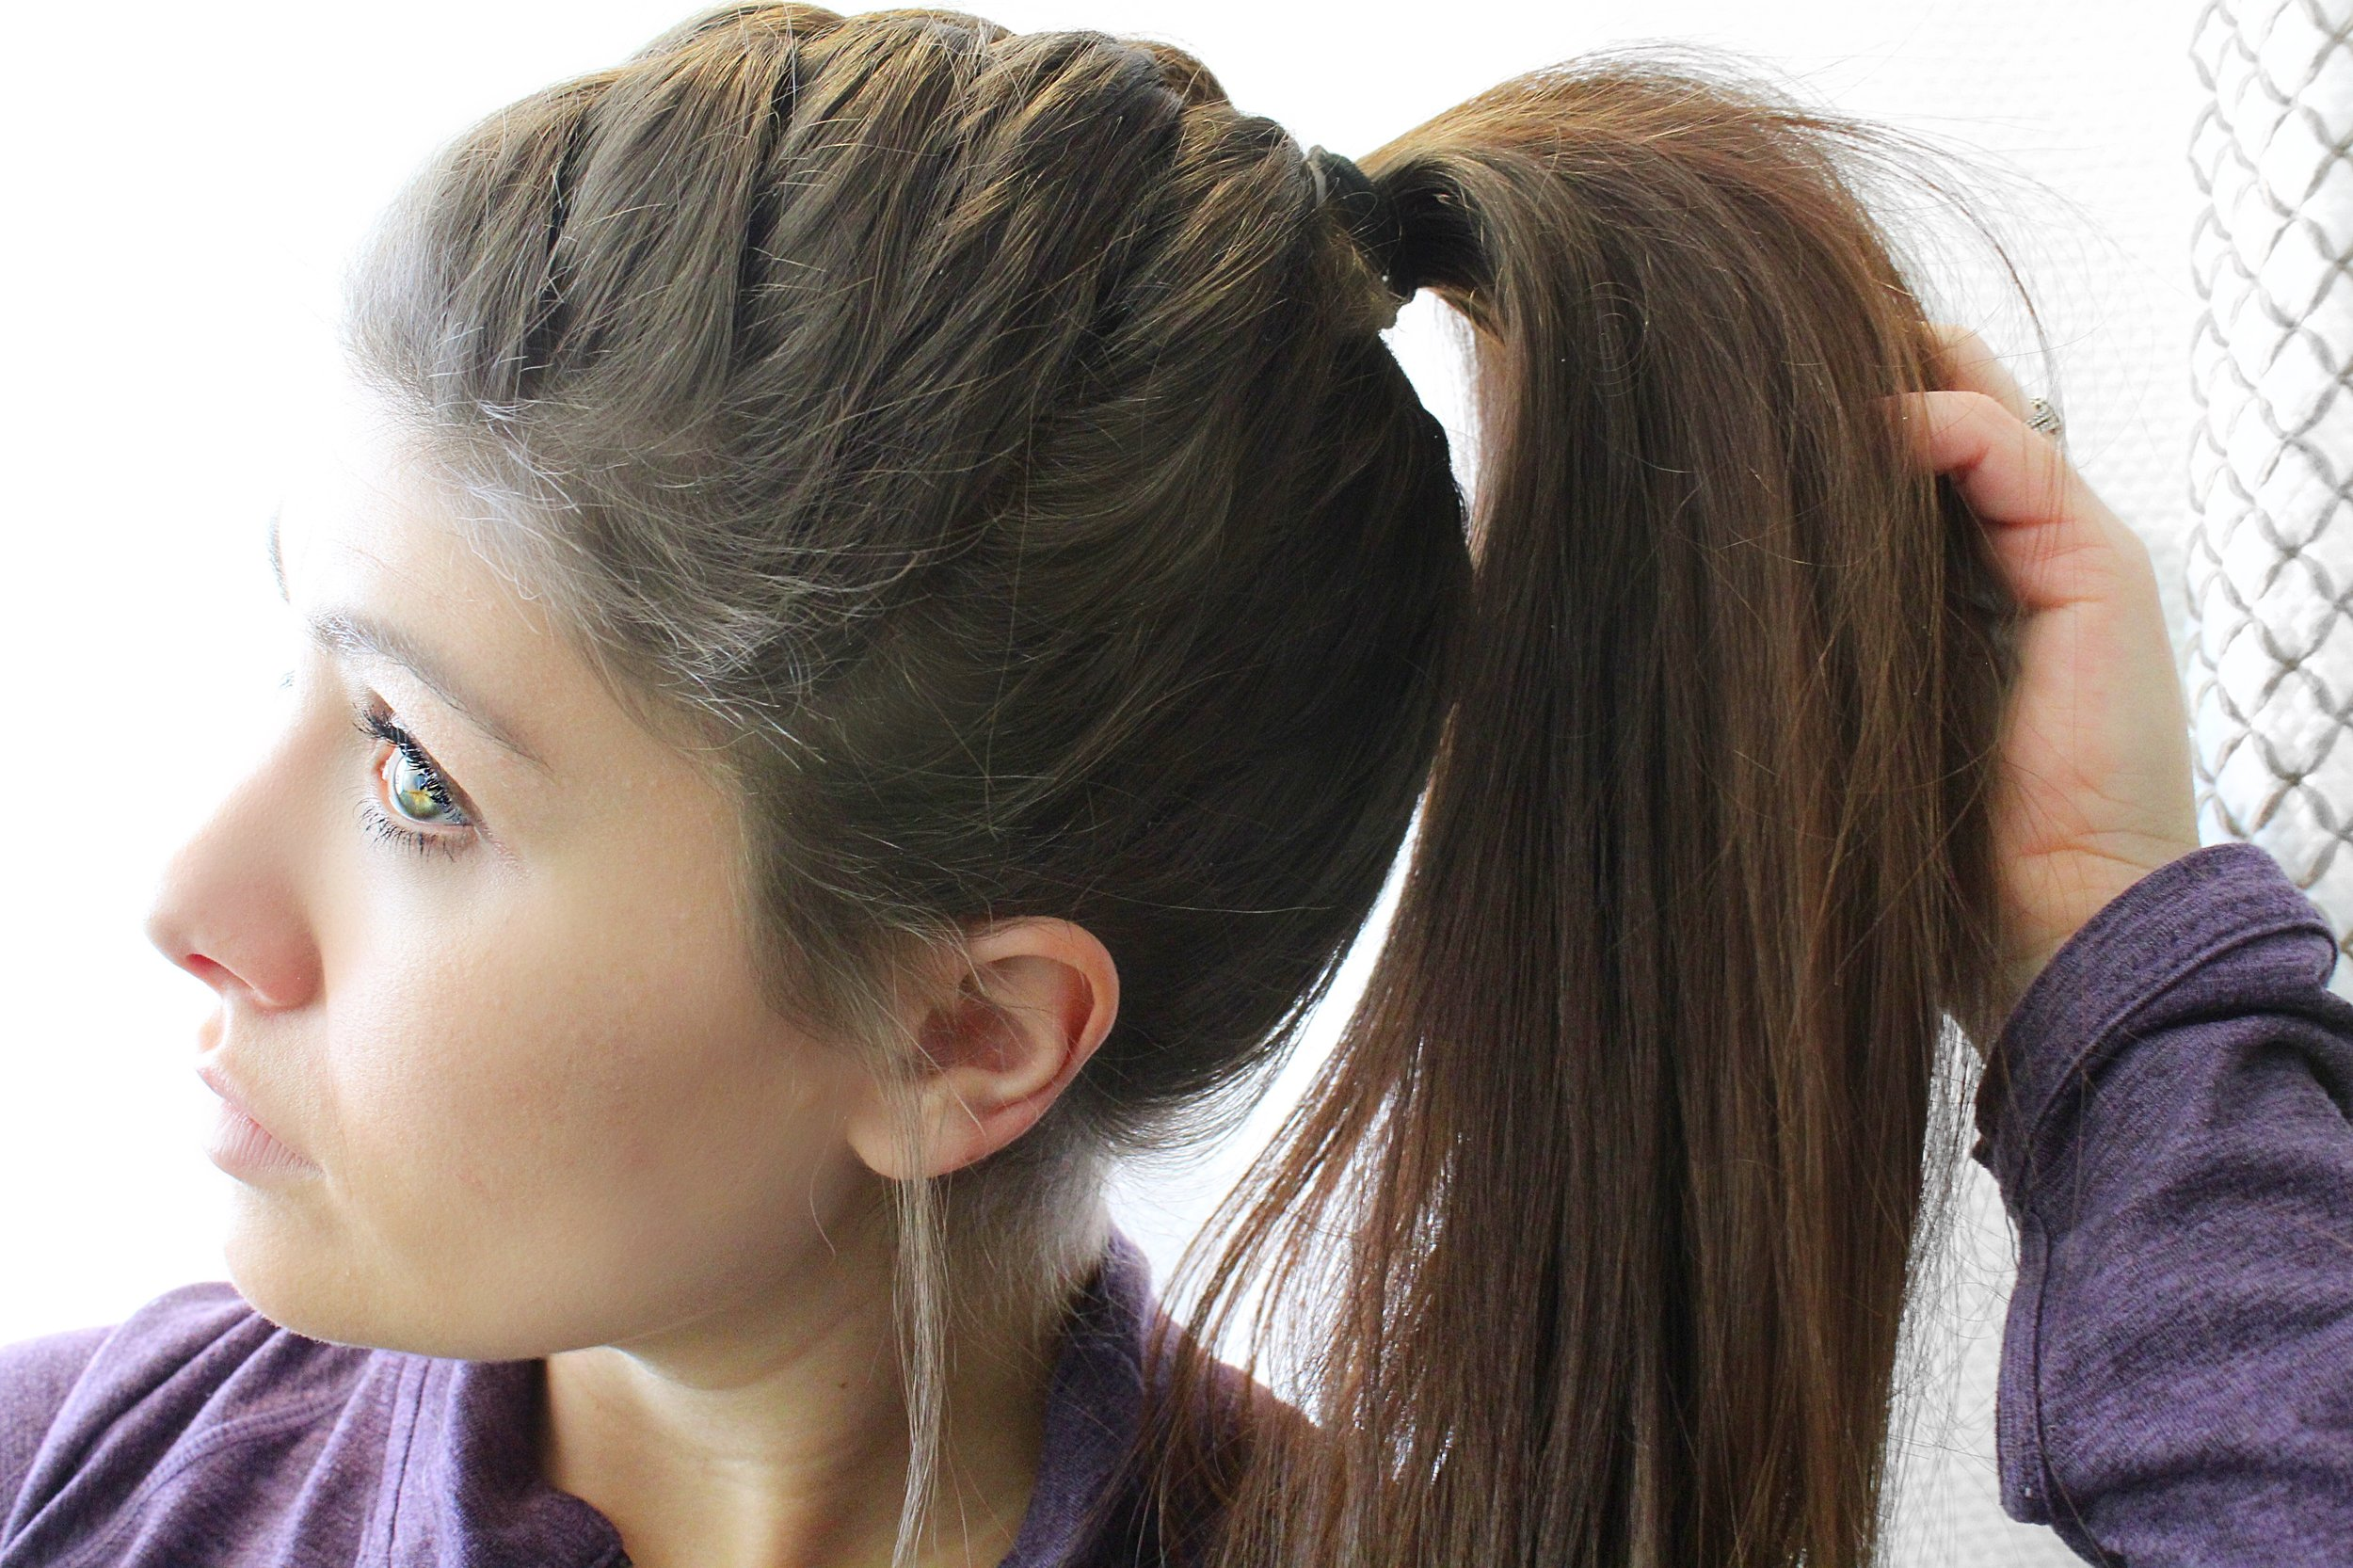 braided-pony-tail-hairstyle.JPG